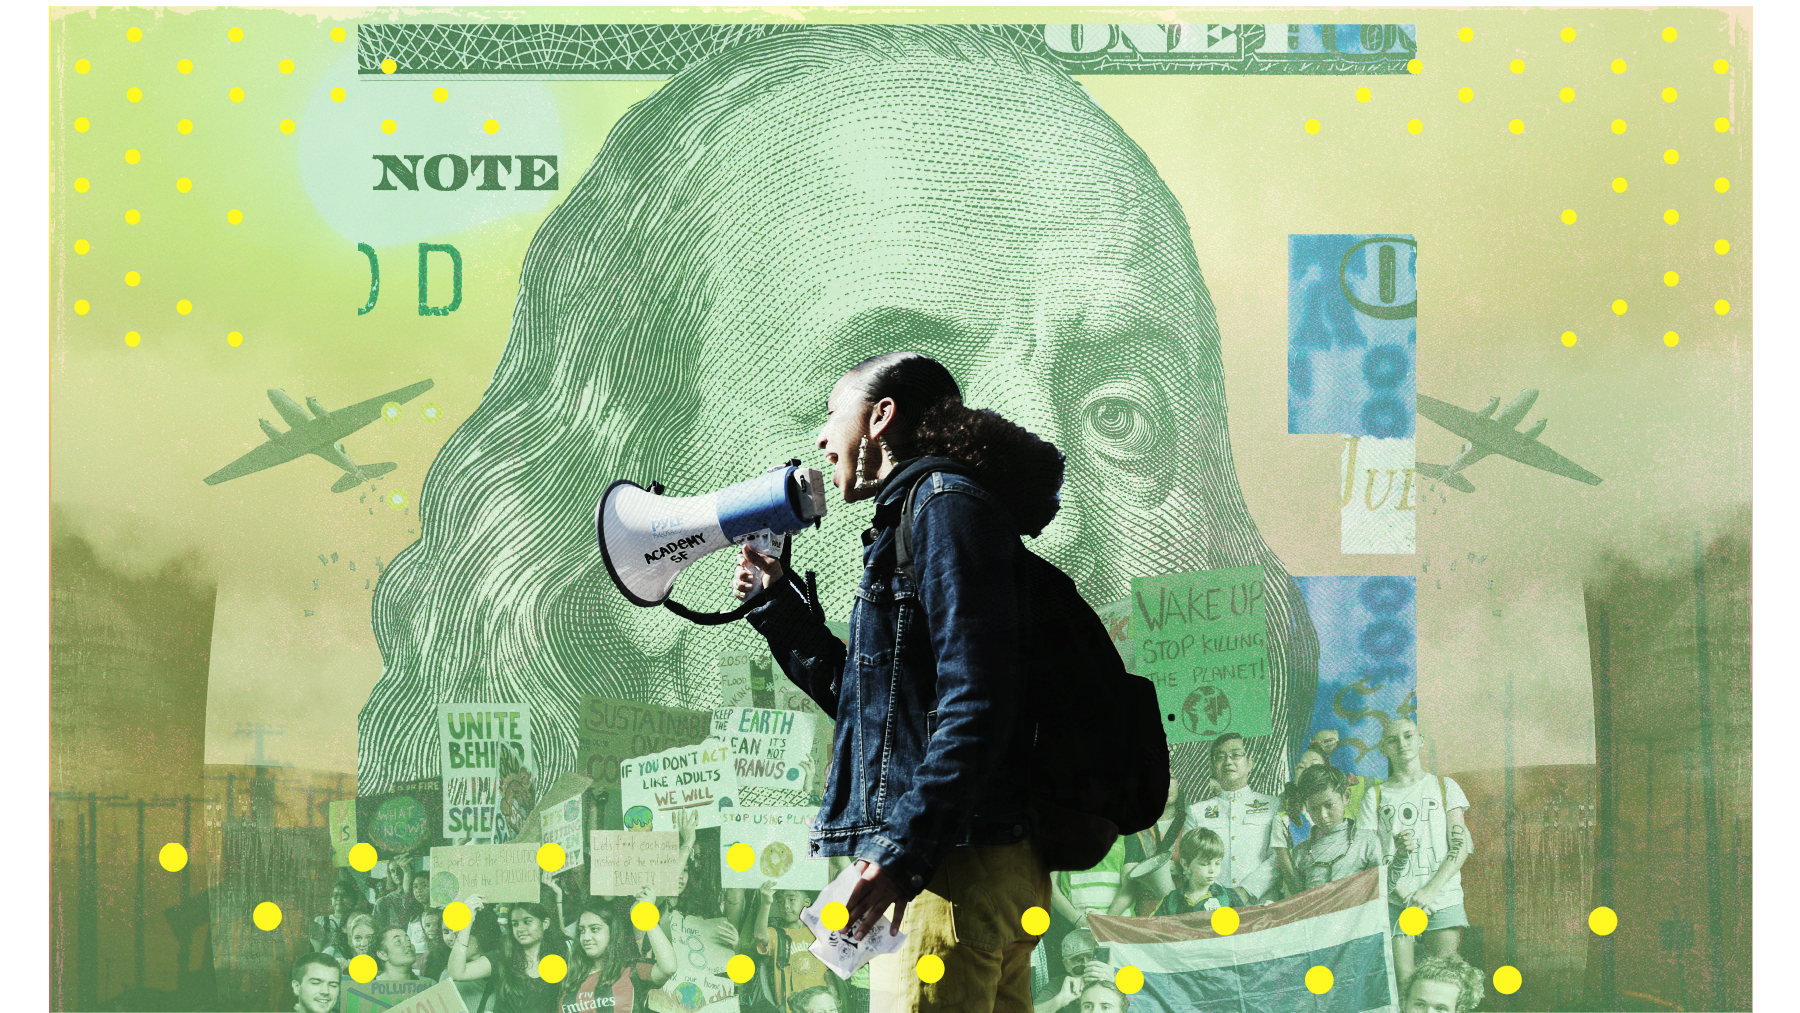 Photo illustration of a person speaking into a loudspeaker superimposed on a $100 bill.